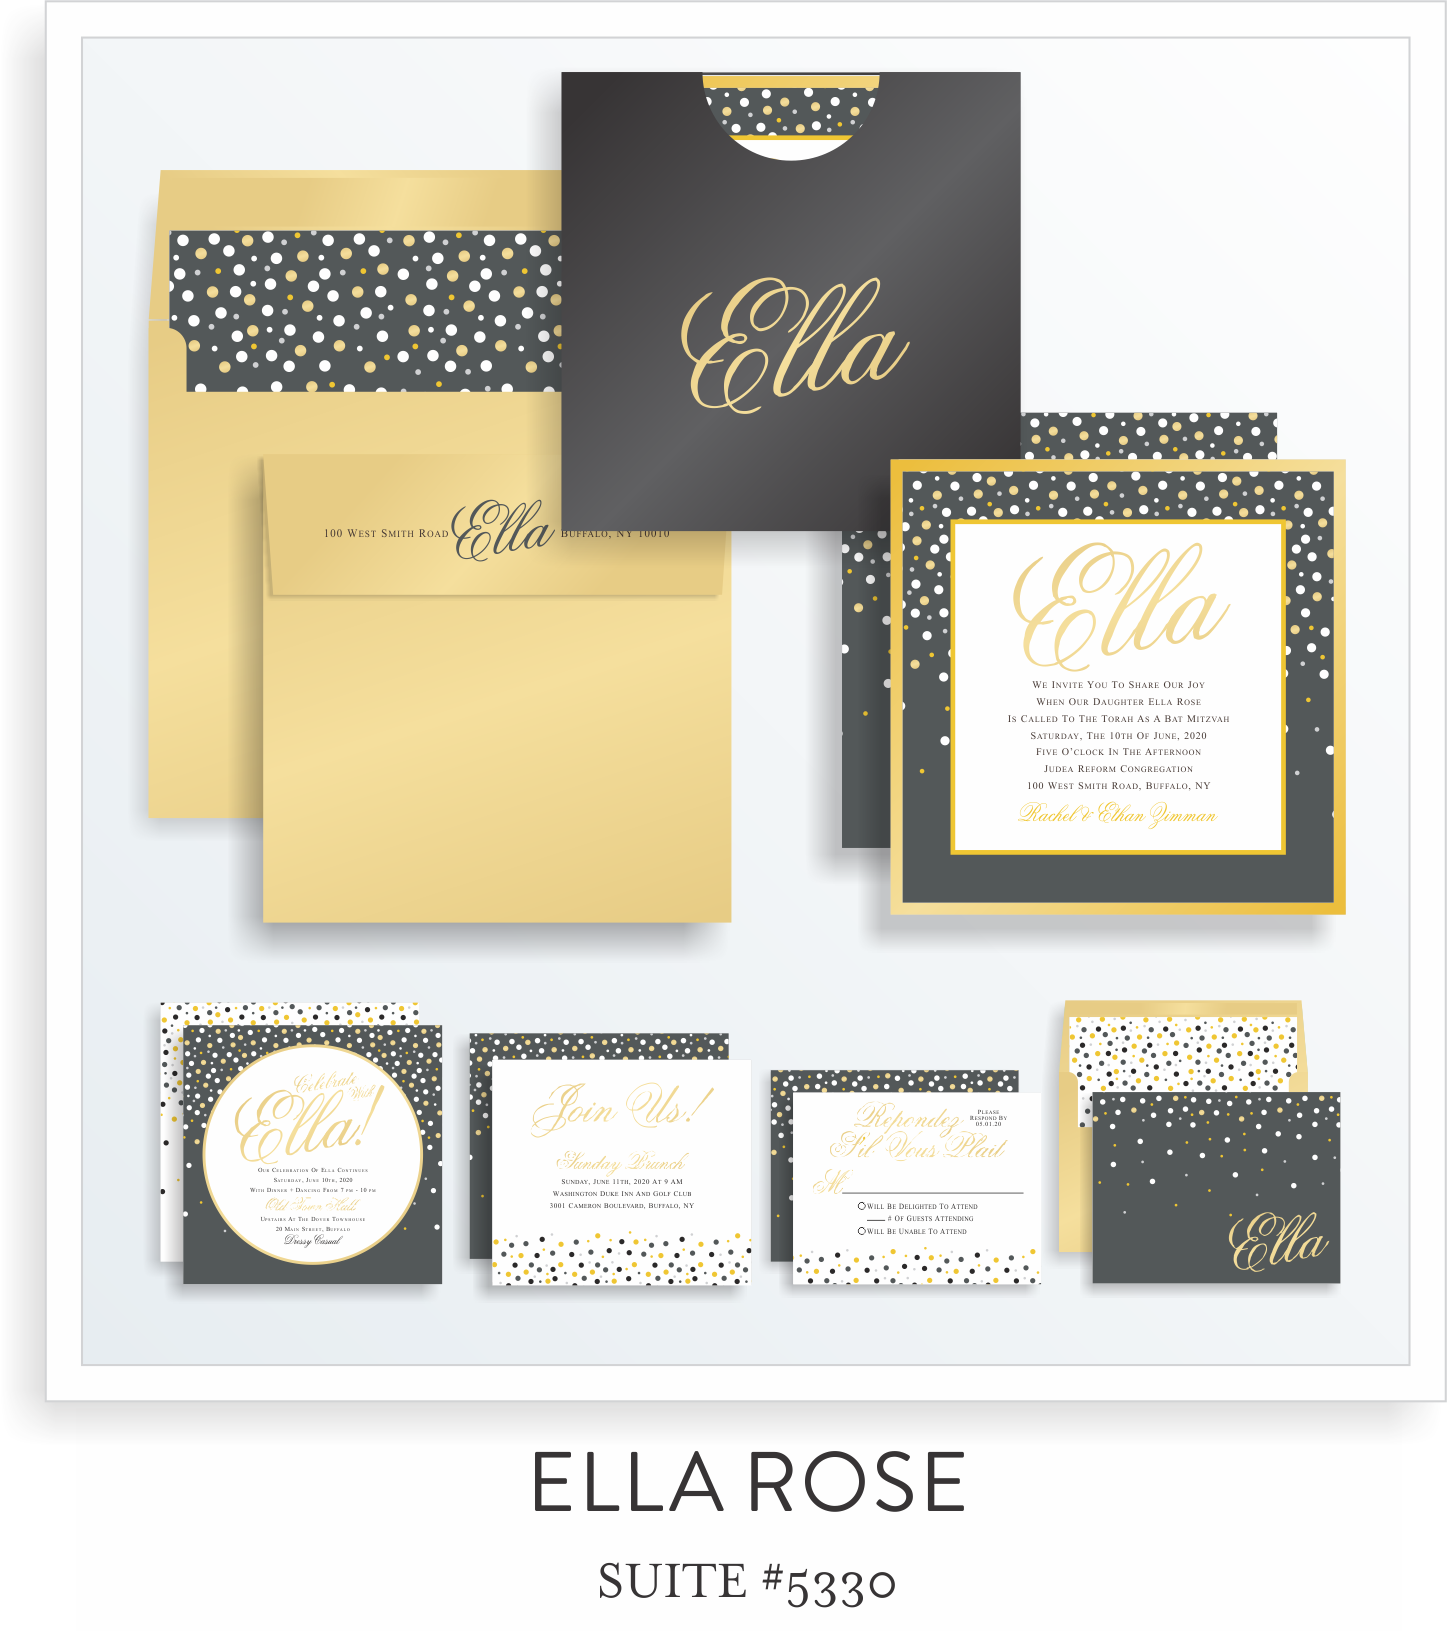 5330 ELLA ROSE SUITE THUMB.png